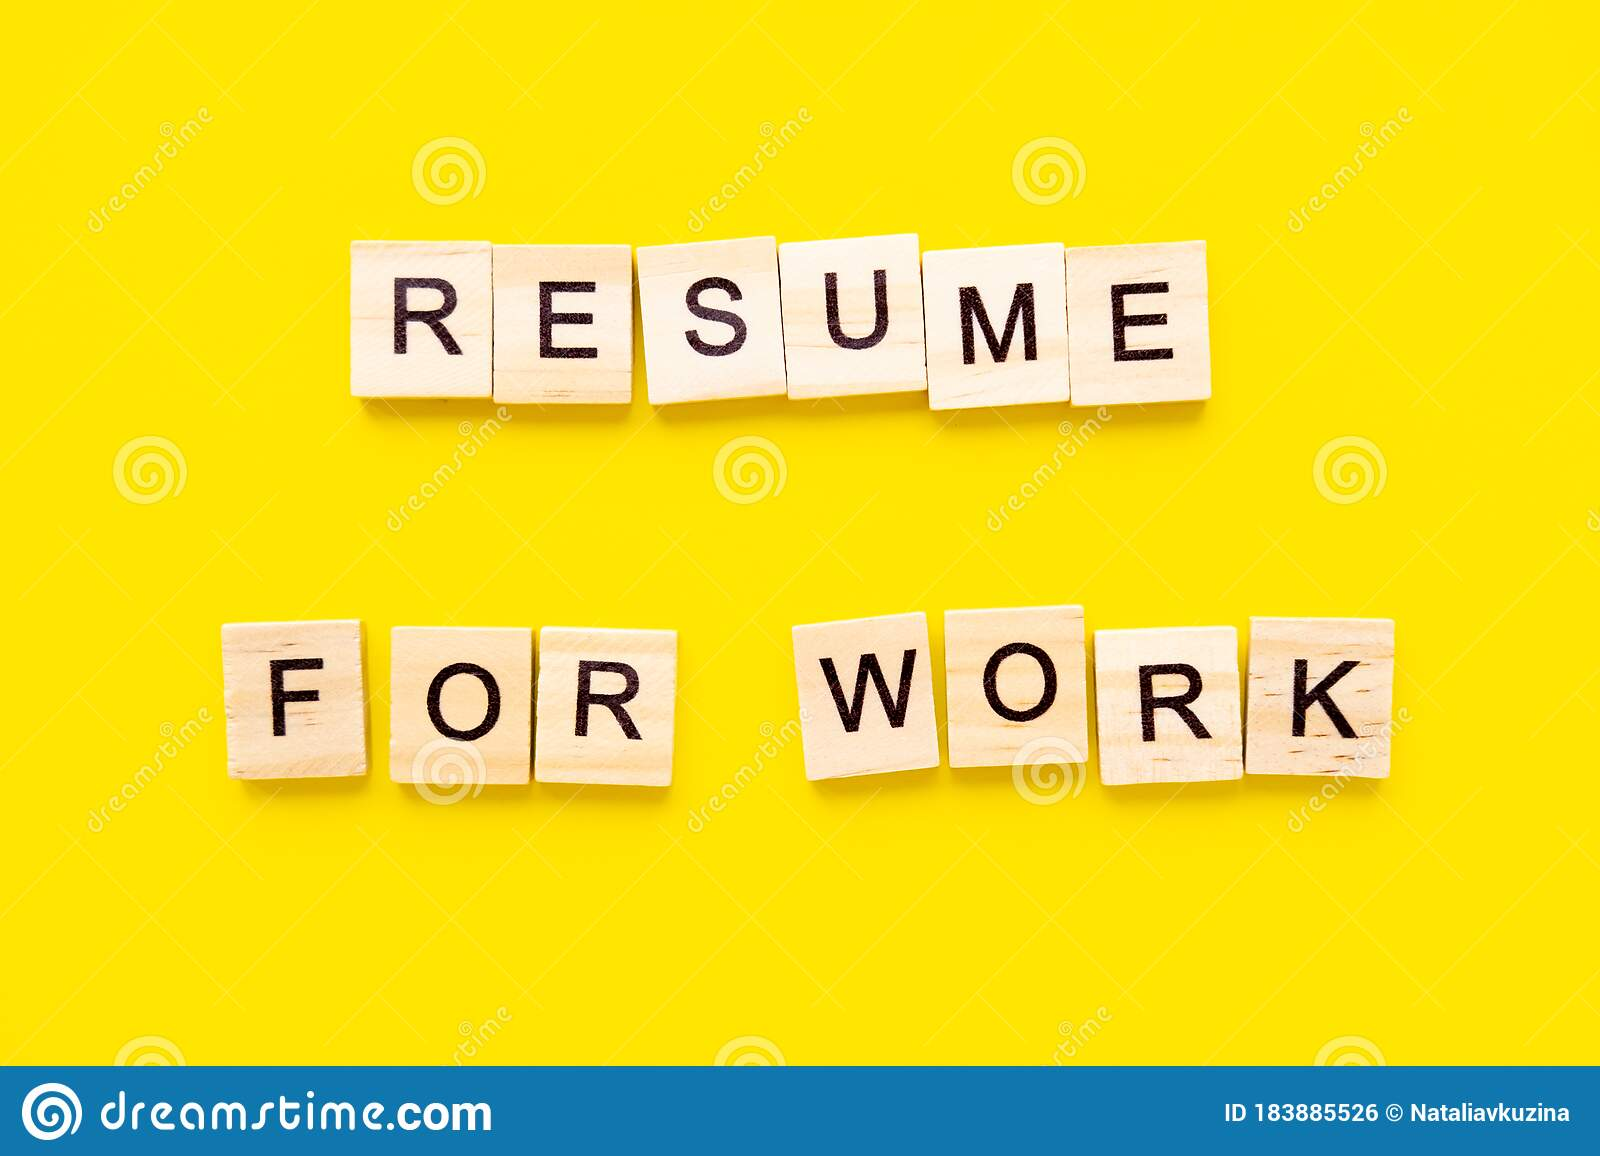 Stay informed every day with yahoo finance's free fully briefed newsletter. Words Resume For Work Wooden Blocks With Lettering On Top Of Yellow Background Human Resource Management And Stock Photo Image Of Communication Announcement 183885526